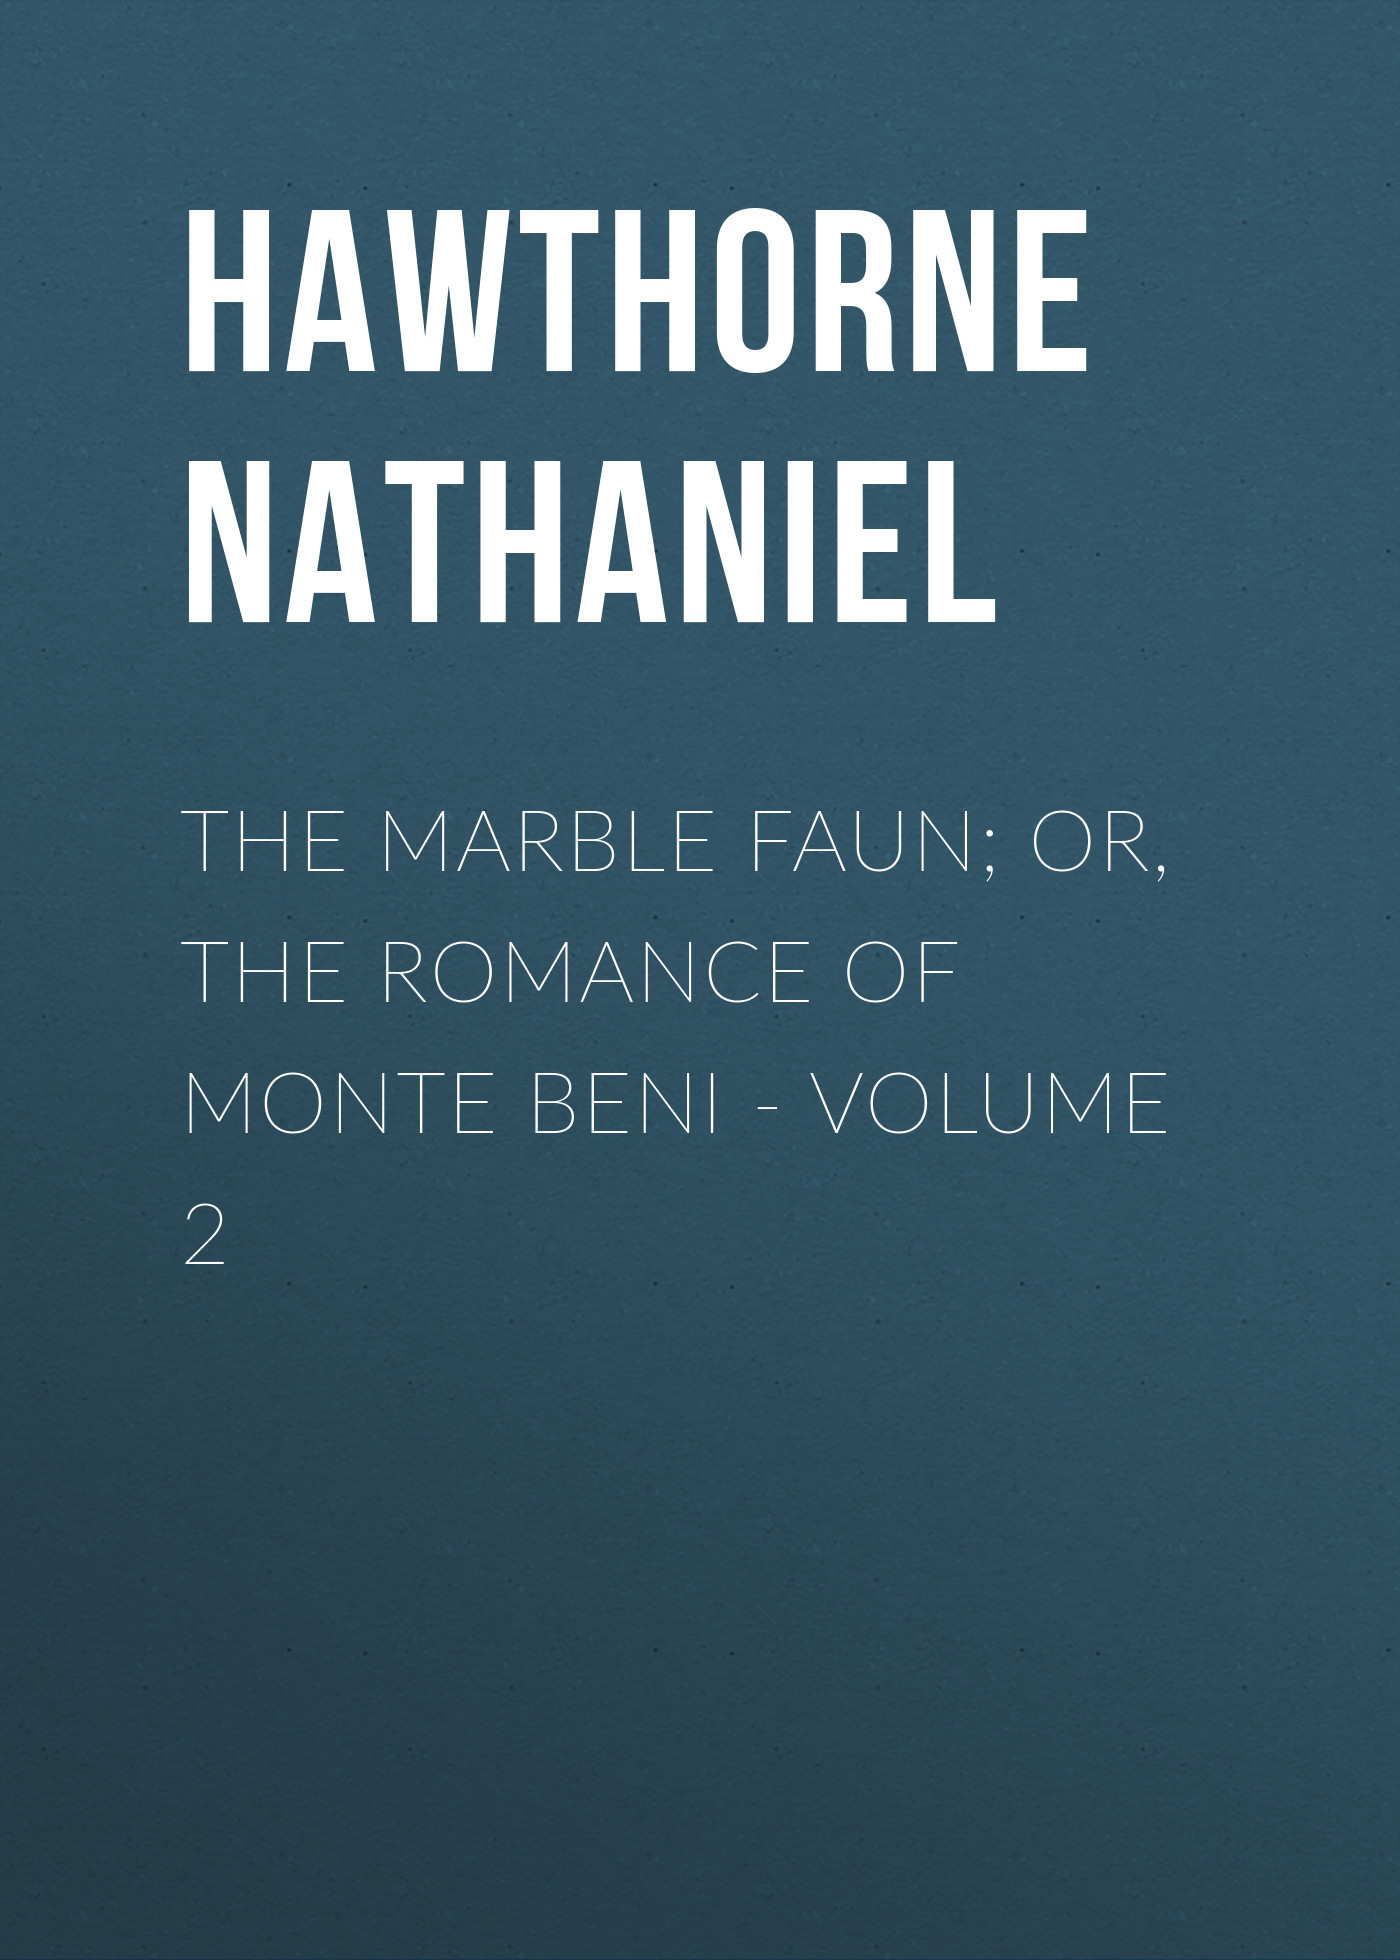 Hawthorne Nathaniel The Marble Faun; Or, The Romance of Monte Beni - Volume 2 the marble faun